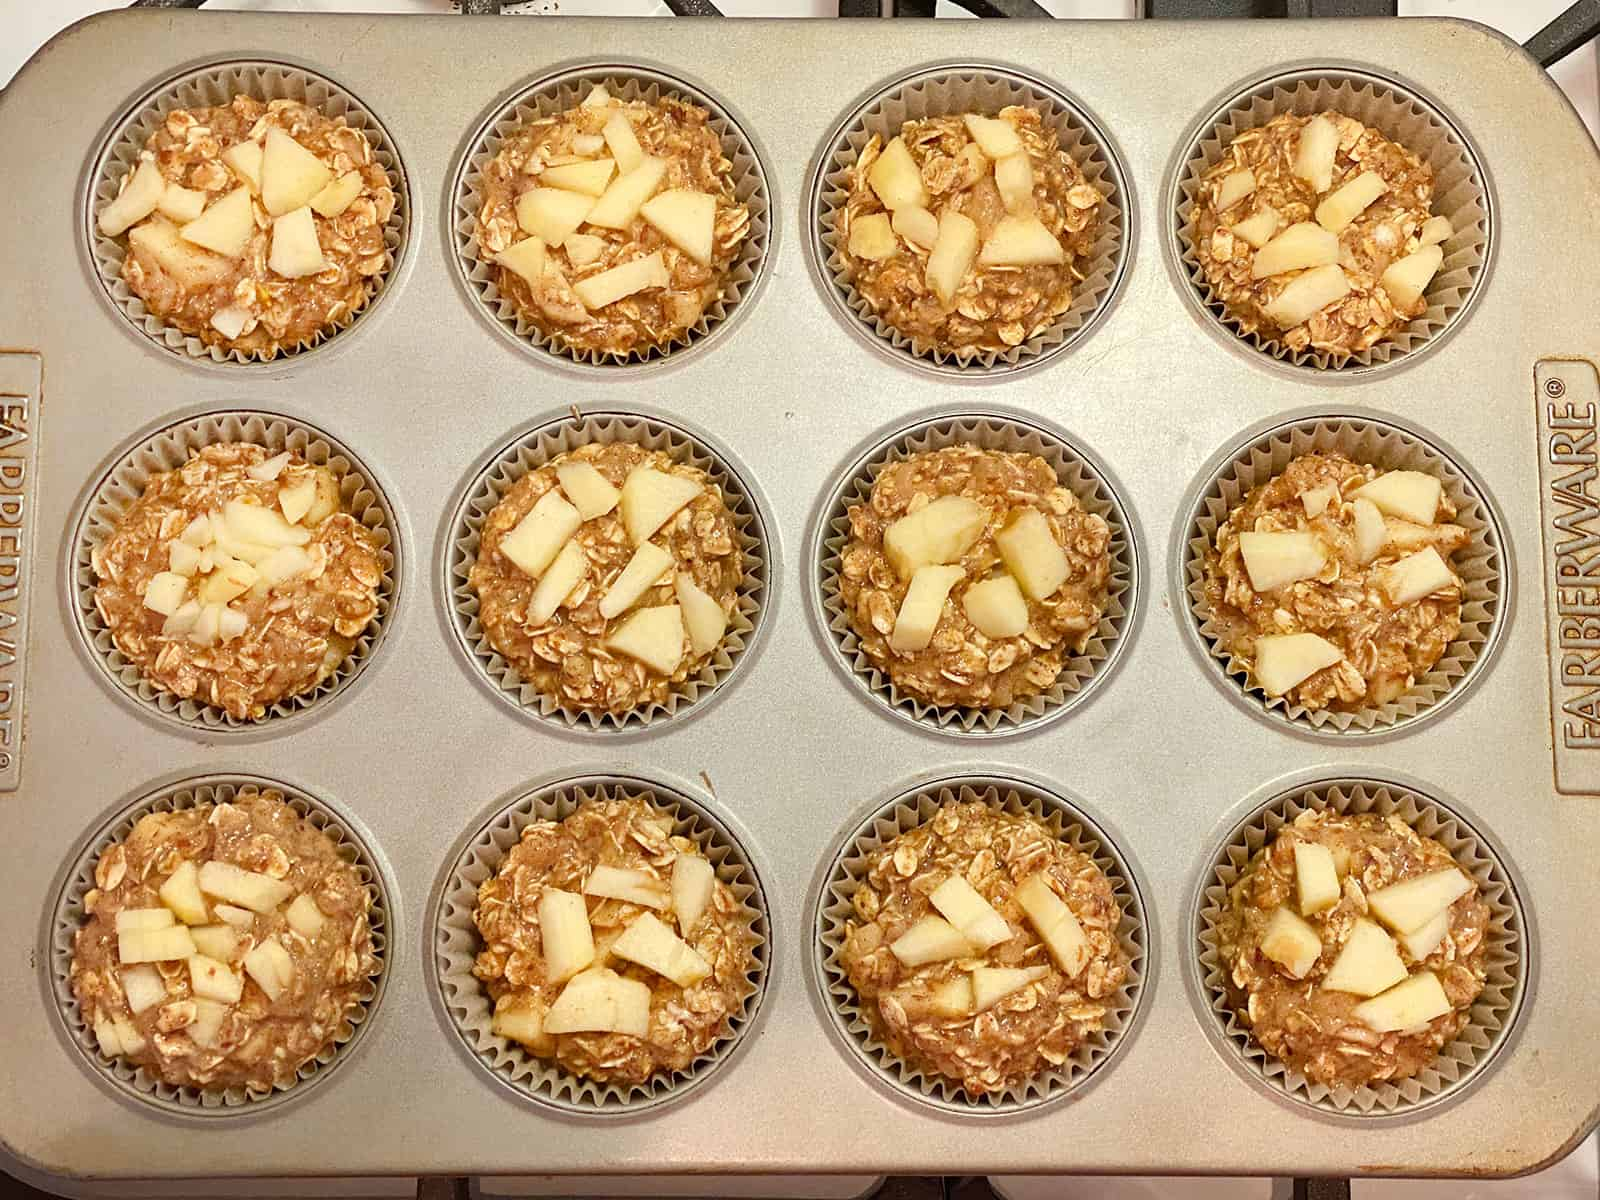 Apple Cinnamon Baked Oatmeal in muffin tins ready to go into the oven.